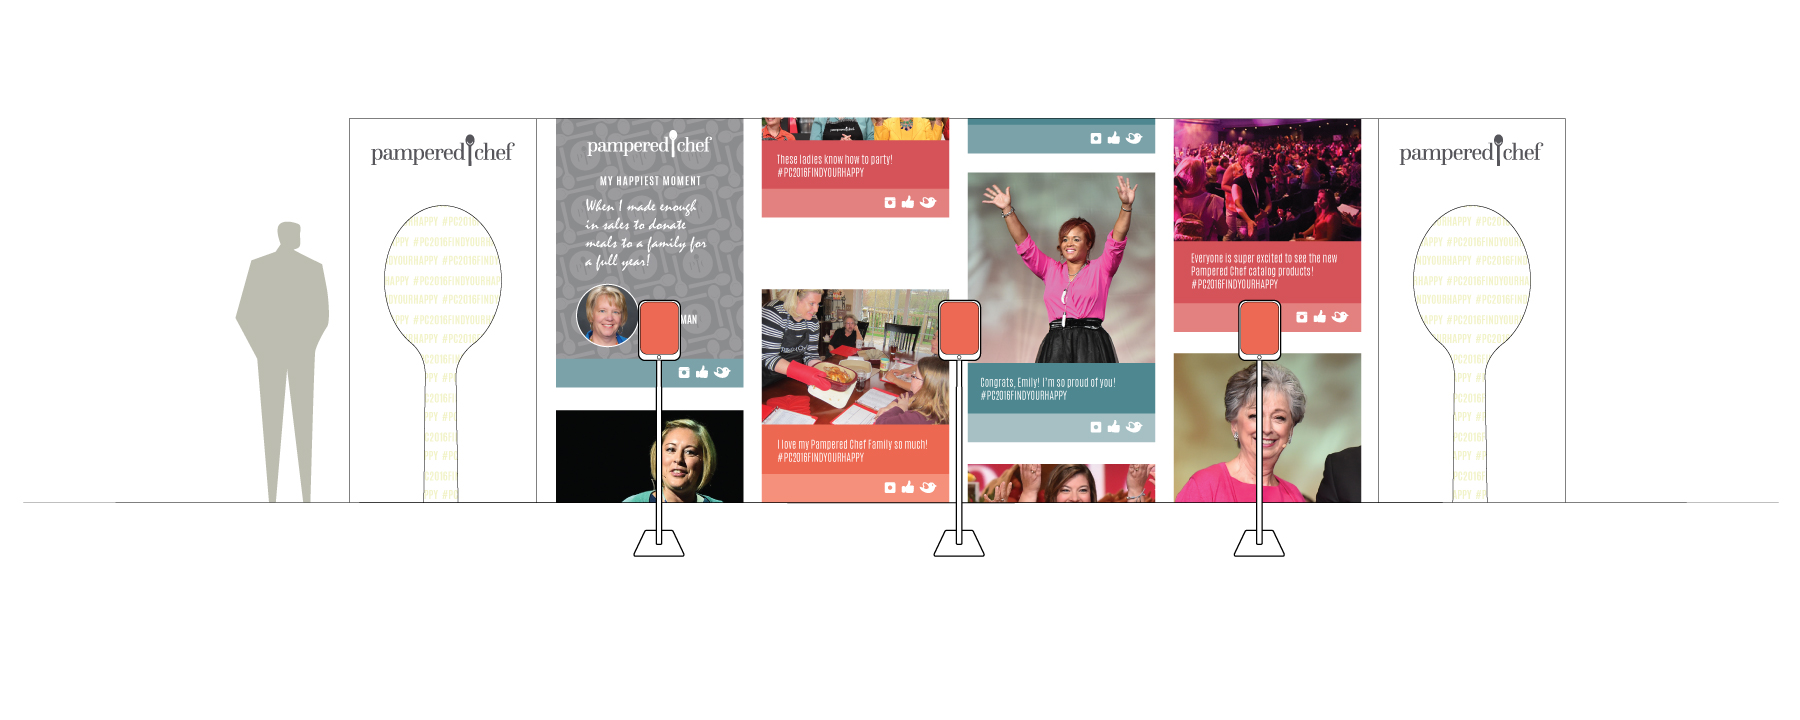 The Pampered Chef Happy Wall,showing social media feed (Tint-Up).